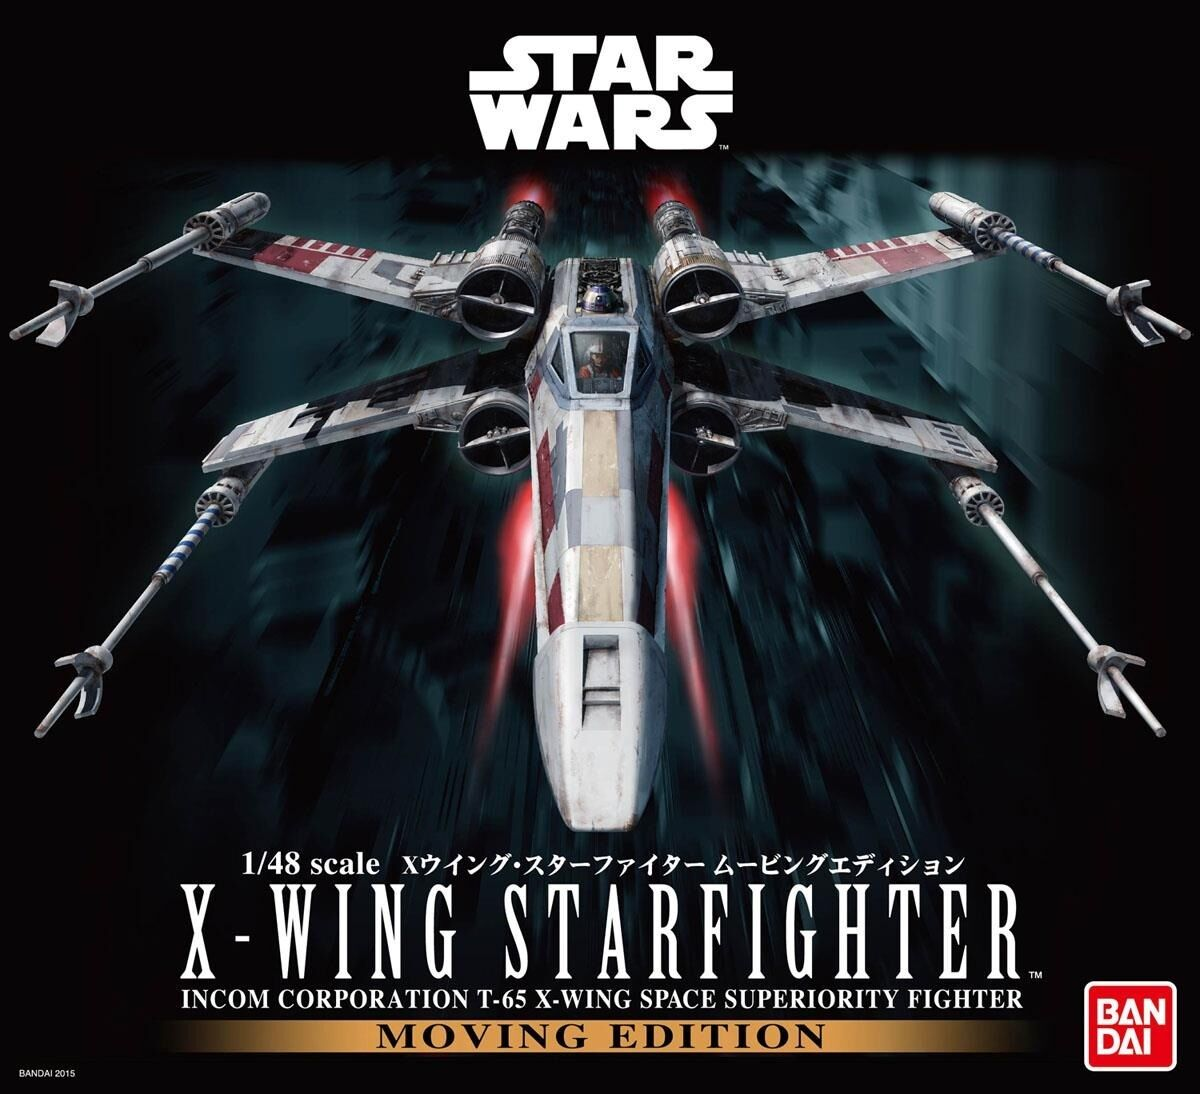 Bandai 1 48 Scale Model Kit Star Wars X-Wing Star Fighters Moving Edition